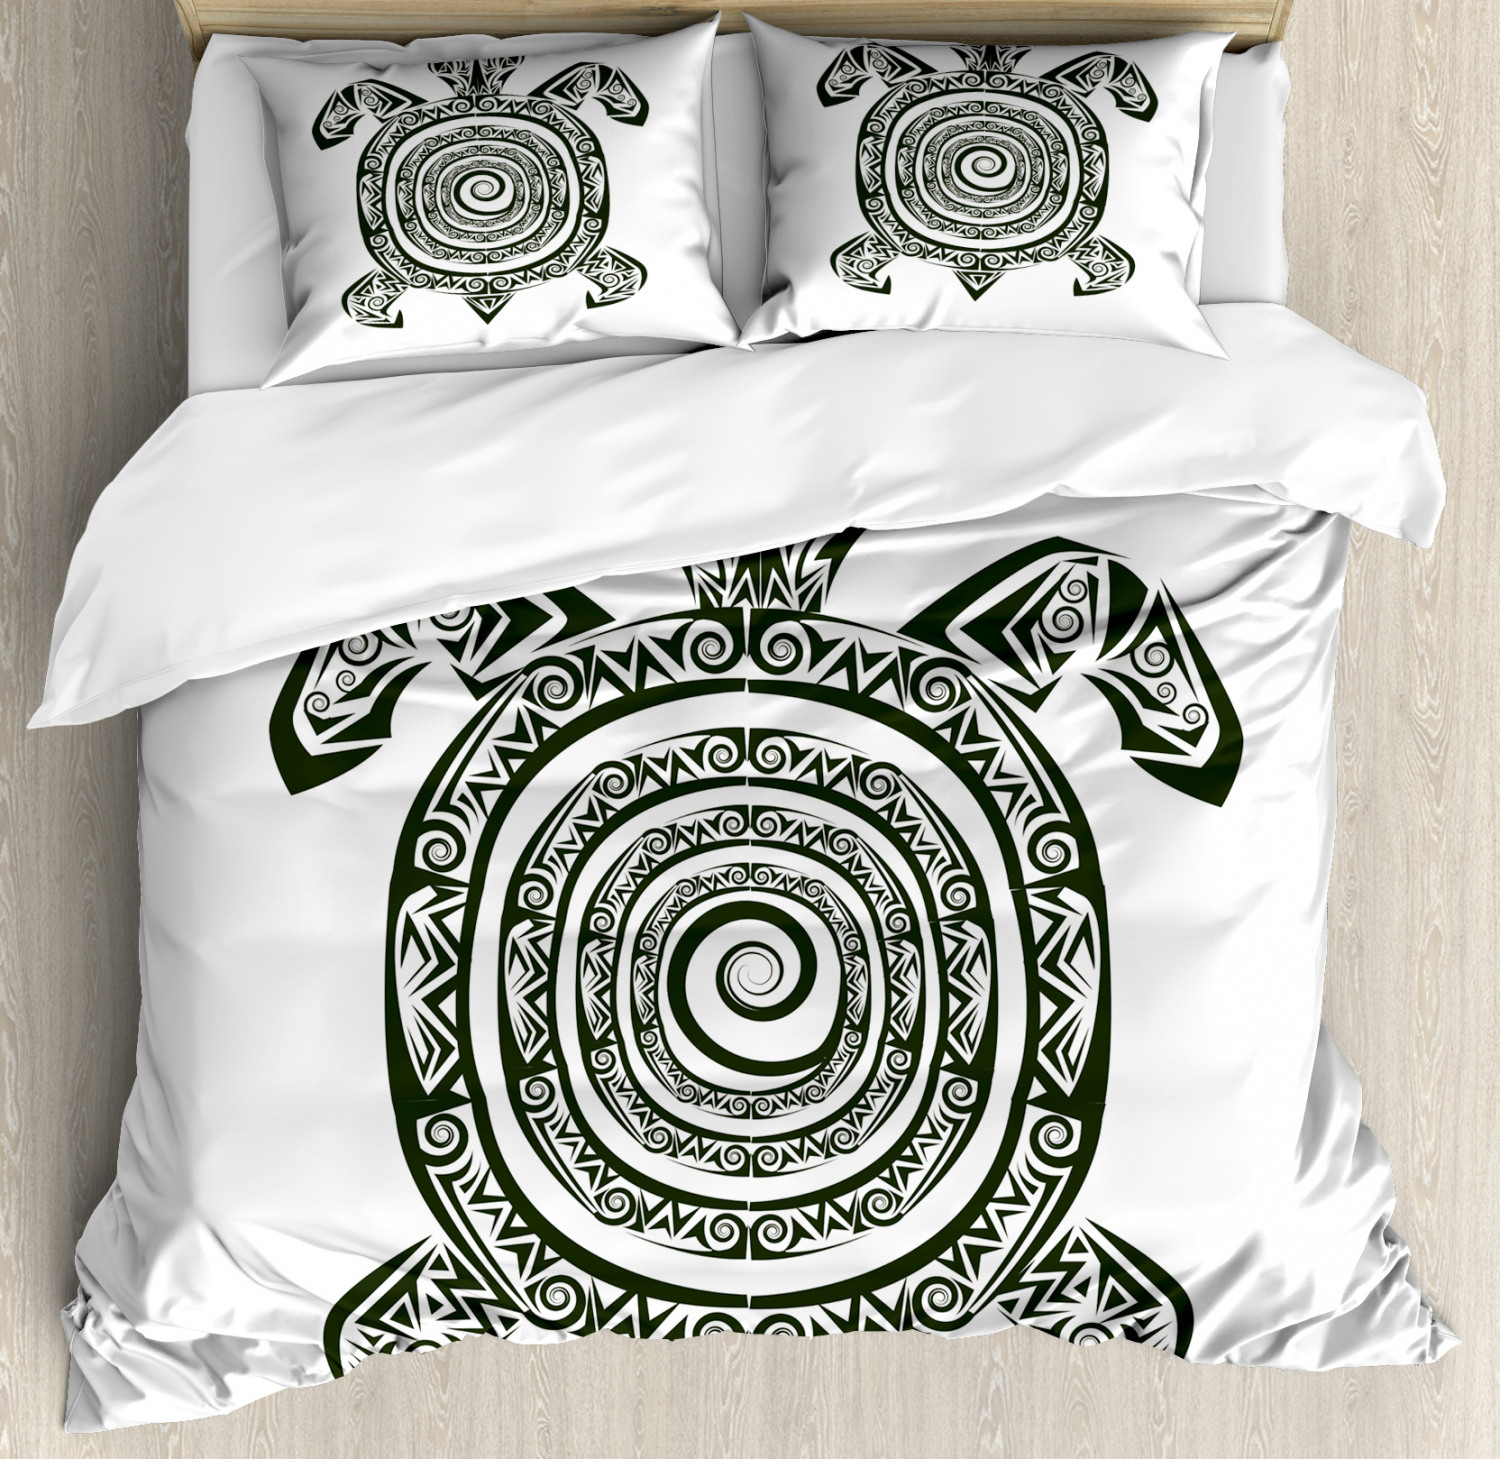 Tribal Duvet Cover Set with Pillow Shams Ancient Turtle Maori Print